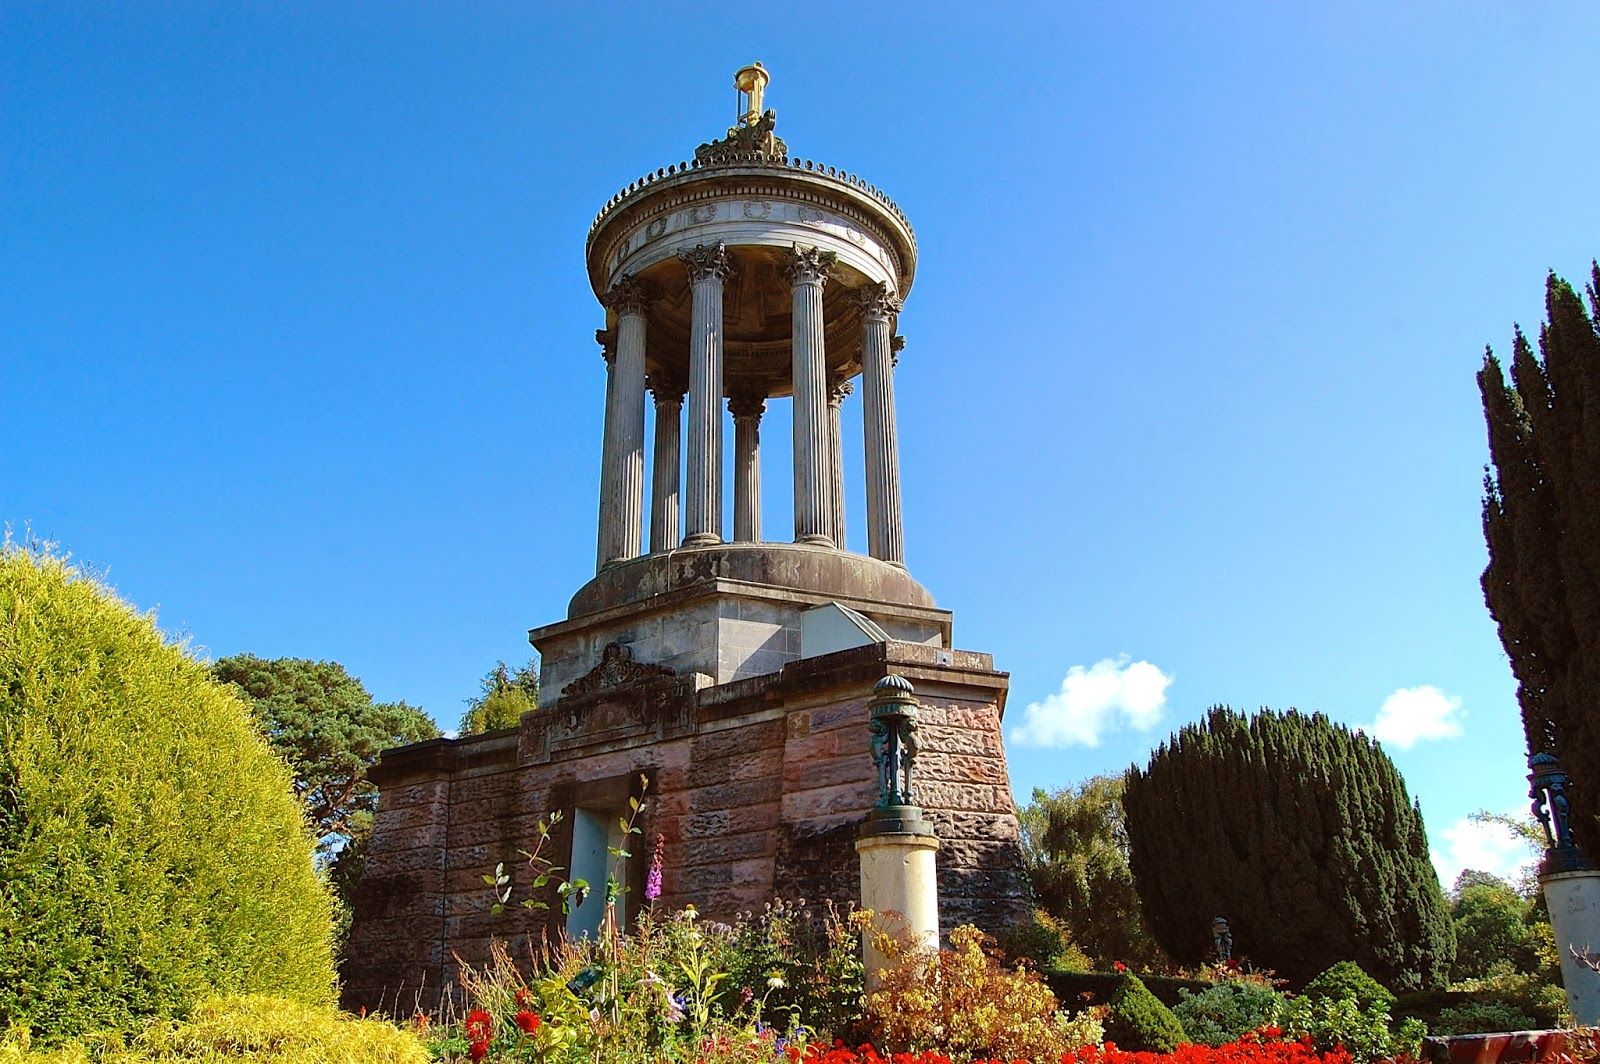 Robert Burns Monument in Alloway, Scotland